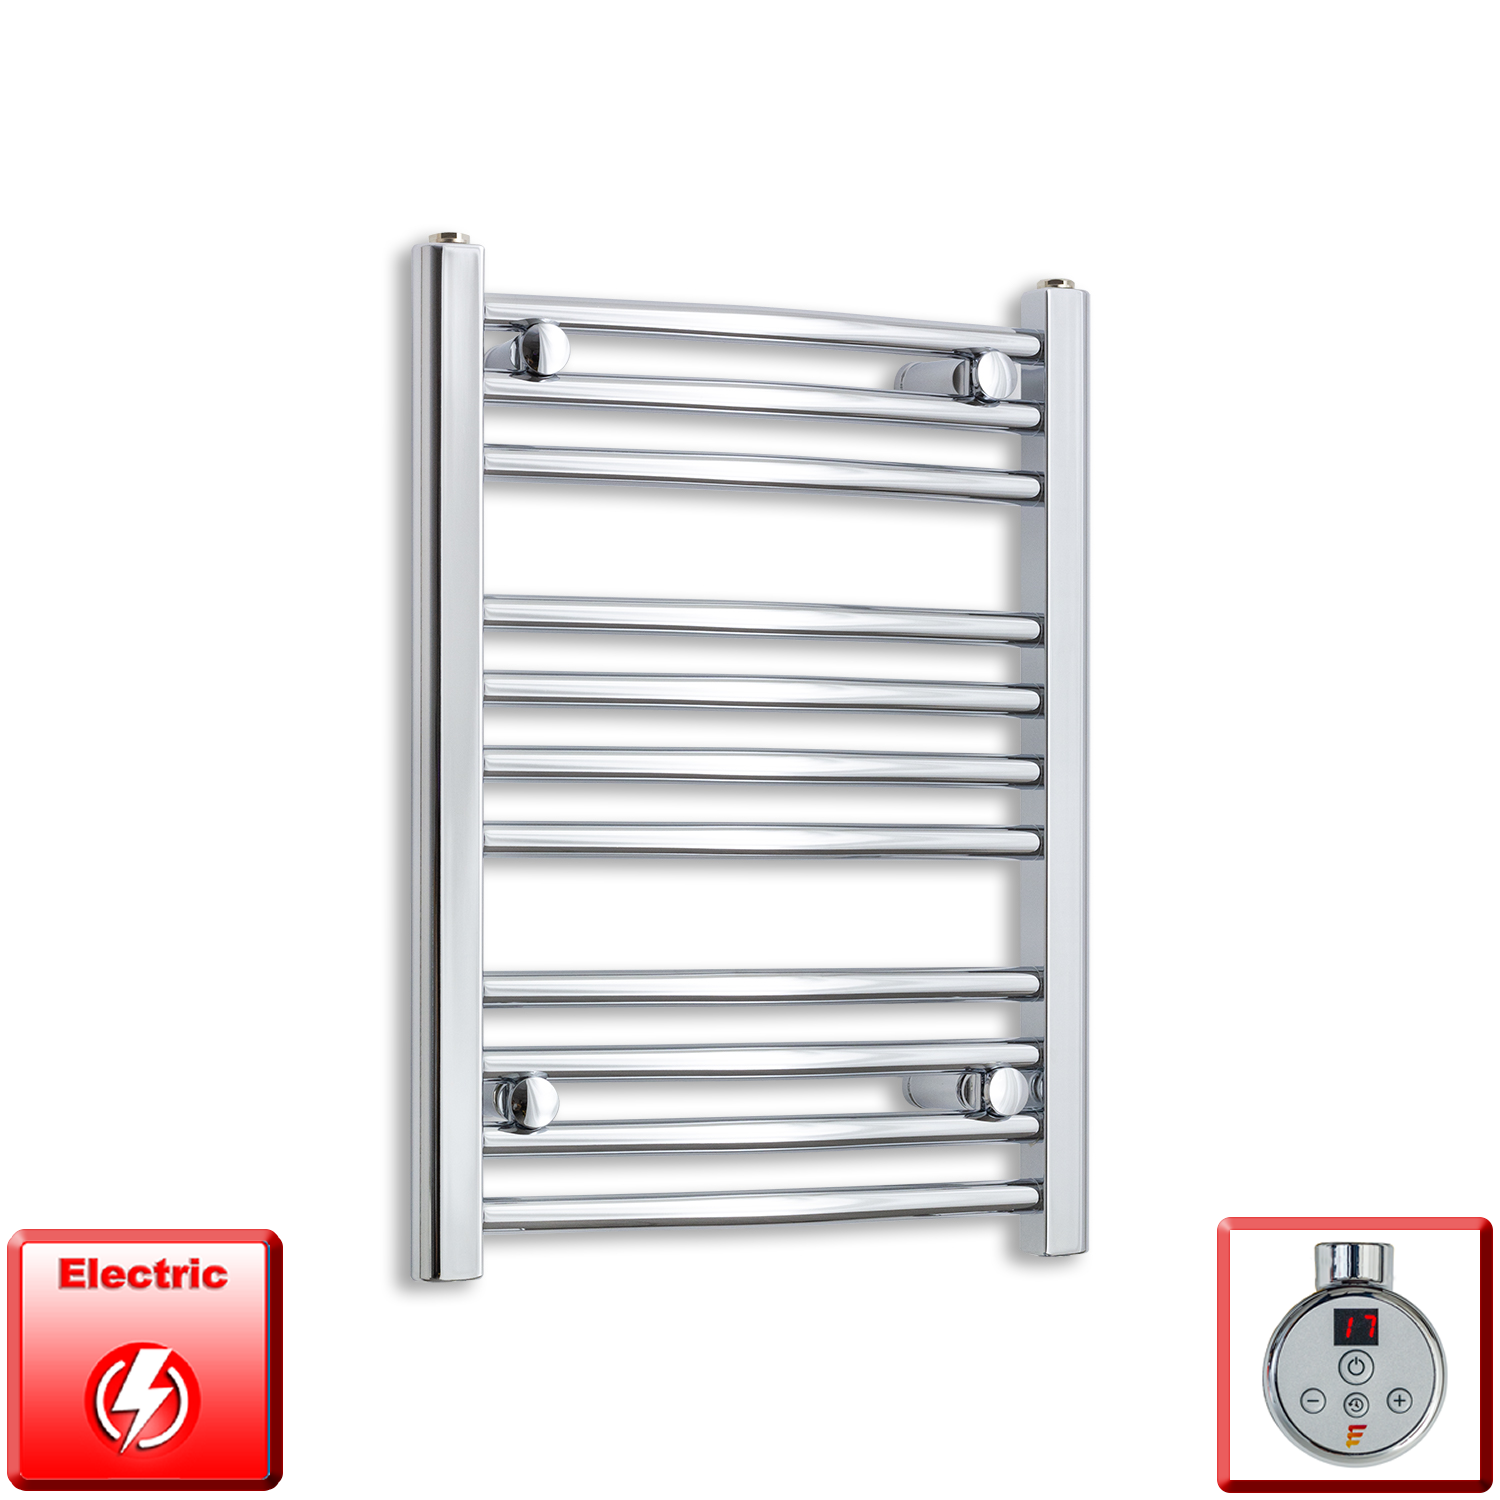 600mm High 450mm Wide Pre-Filled Electric Heated Towel Rail Radiator Straight Chrome